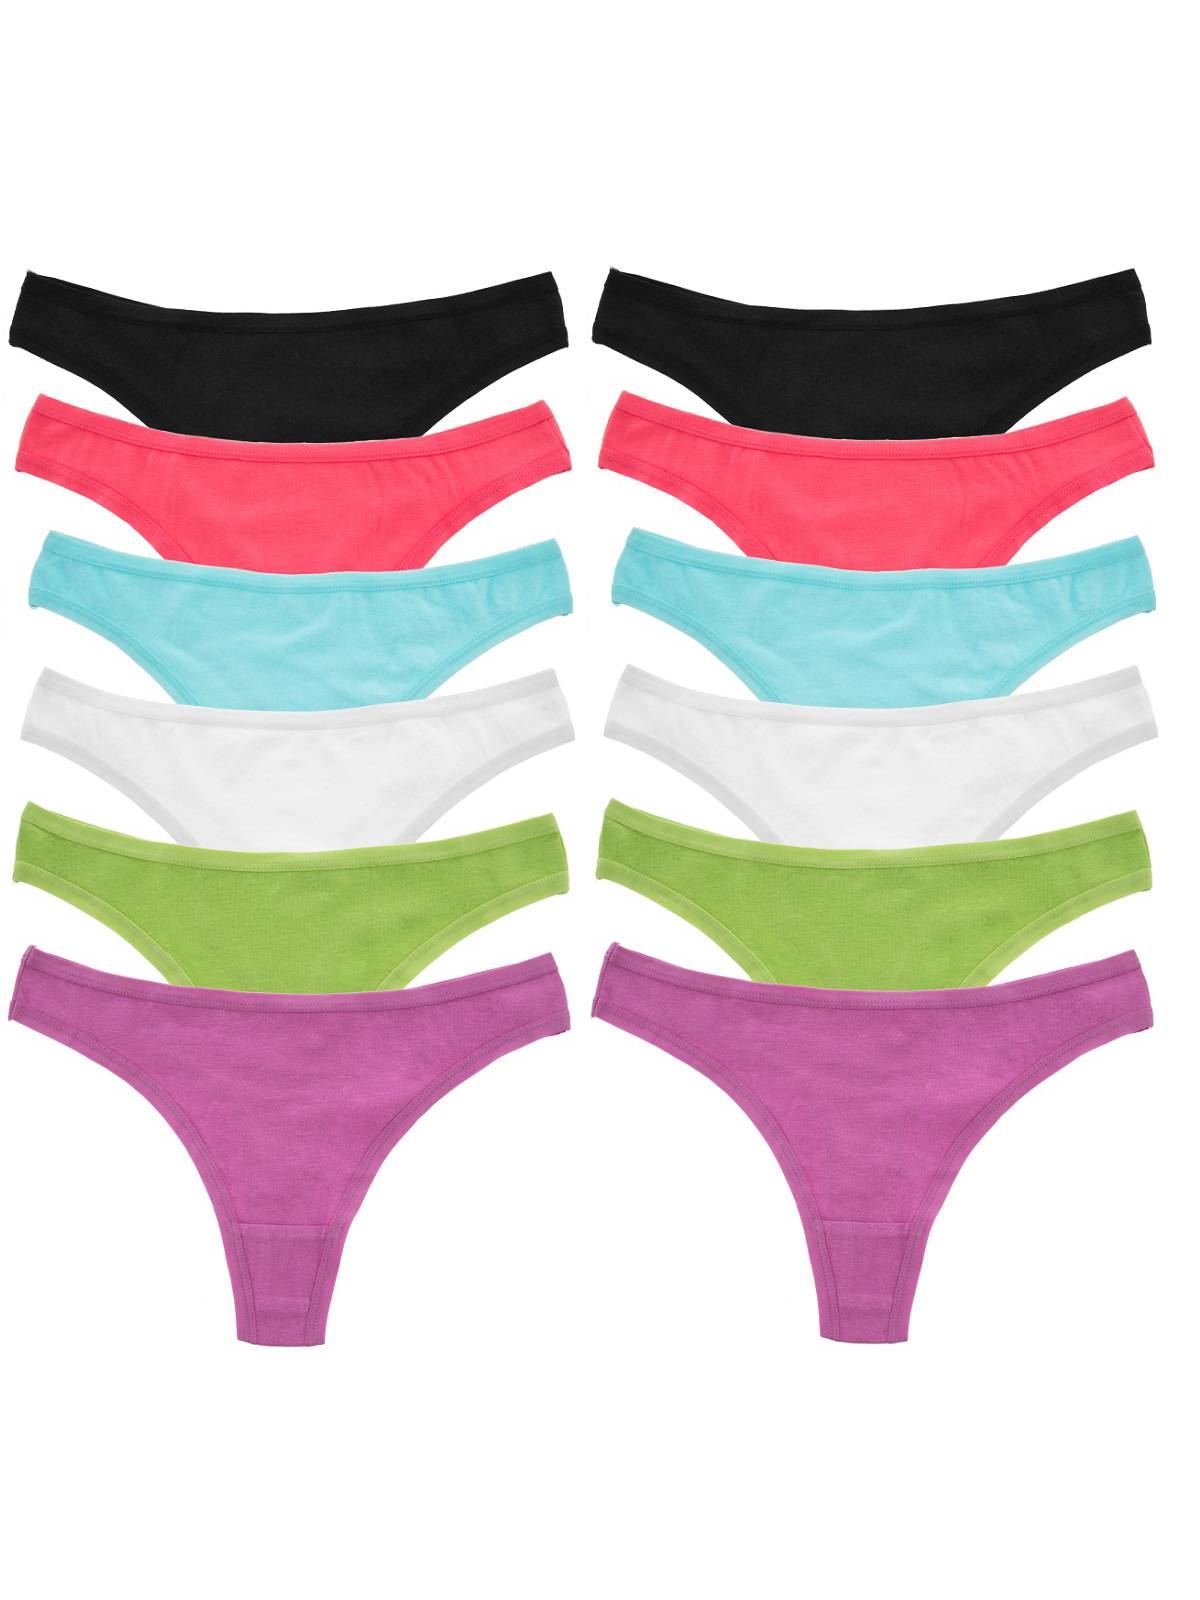 Jo & Bette (12 Pack) Ladies Cotton Underwear Lingerie Thongs Soft Sexy Panties Set For Women Teens by